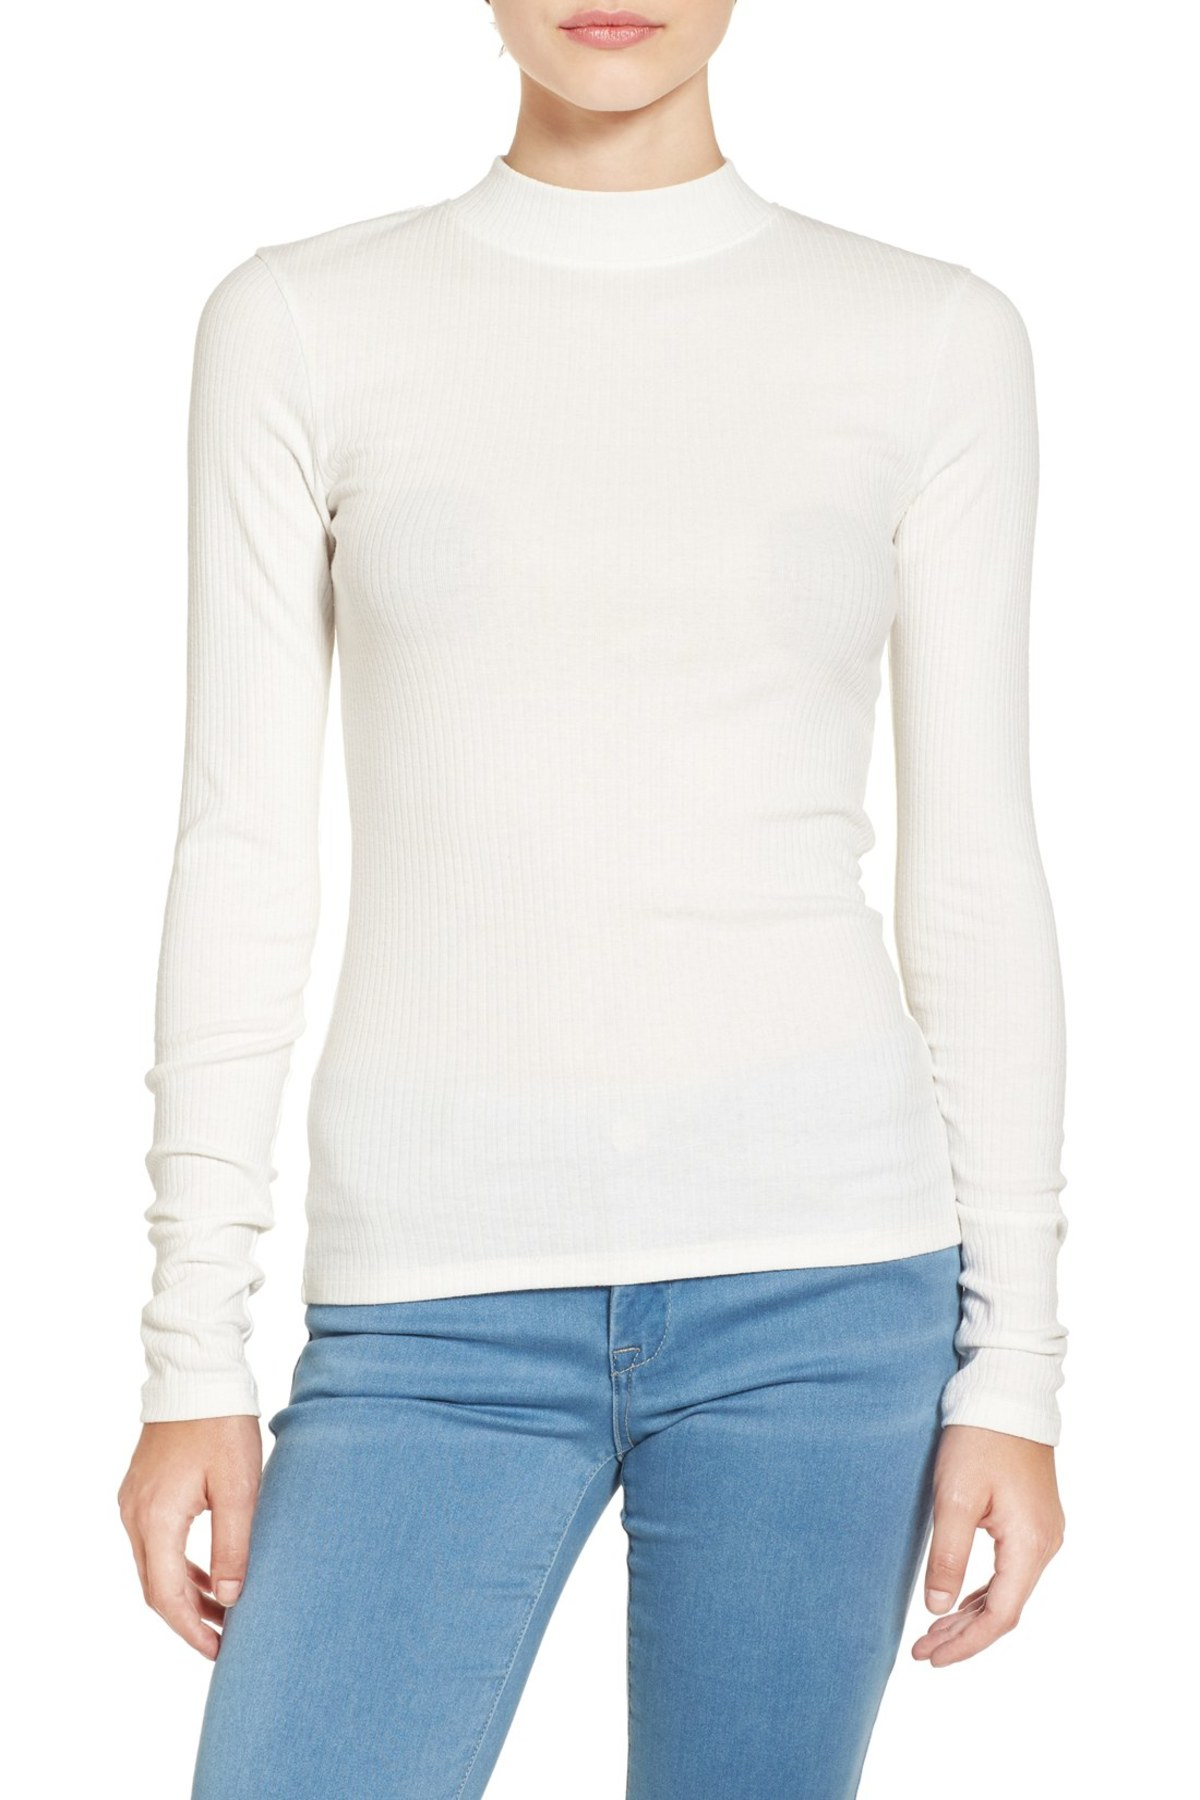 BP white Rib Knit Mock Neck Tee